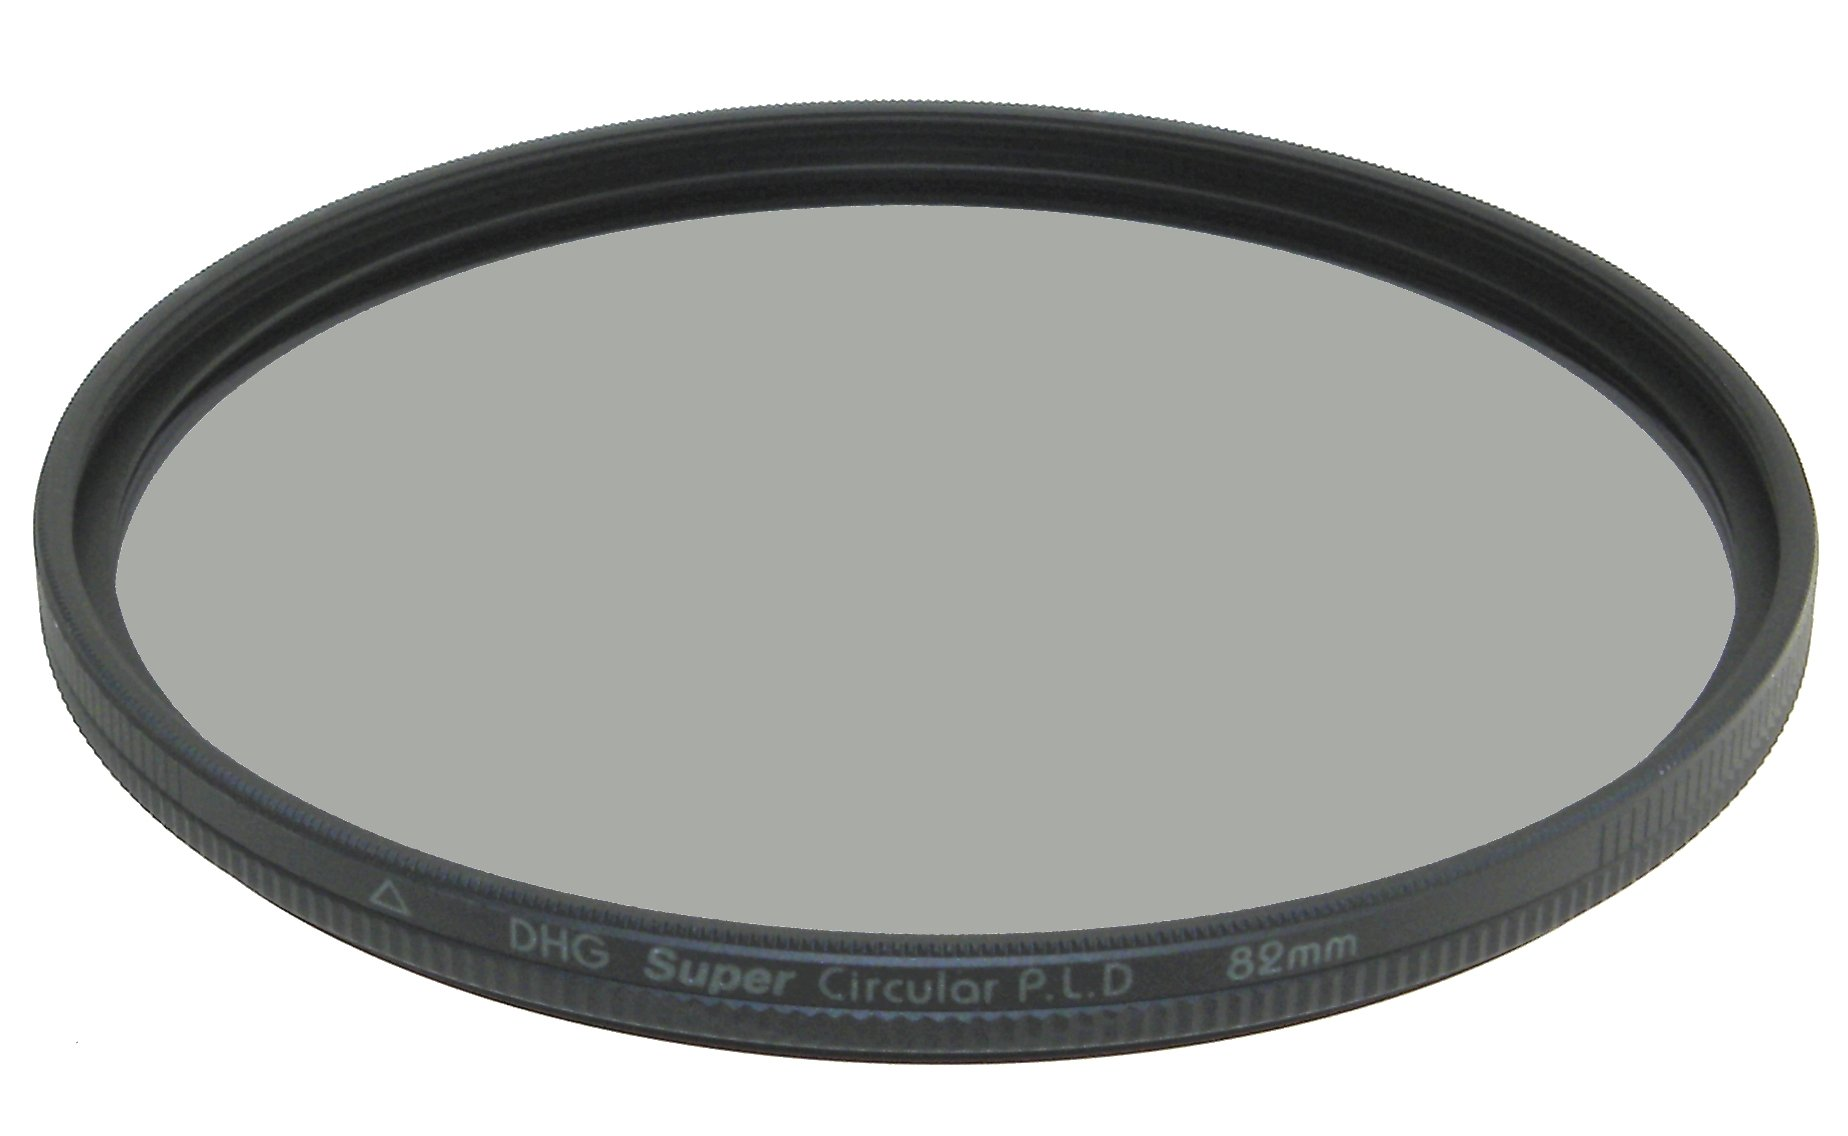 Marumi DHG Super Circular Polarizer CPL PL.D 82 82mm Filter Japan by Marumi